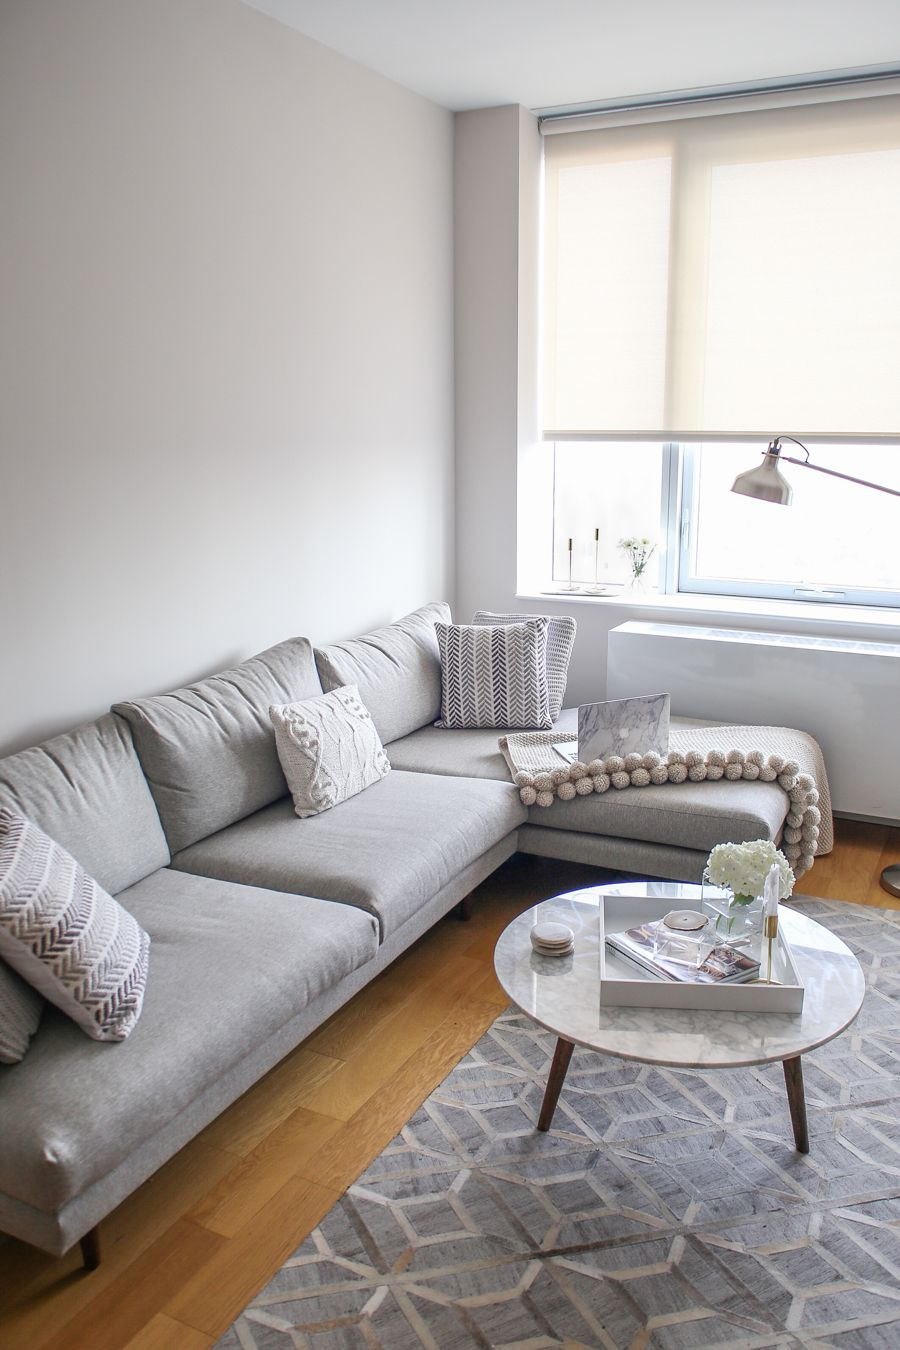 Nyc Living Room Apartment Grey Sectional Sofa With Wooden Floors Apartment Decor Living Room Living Room Decor Apartment